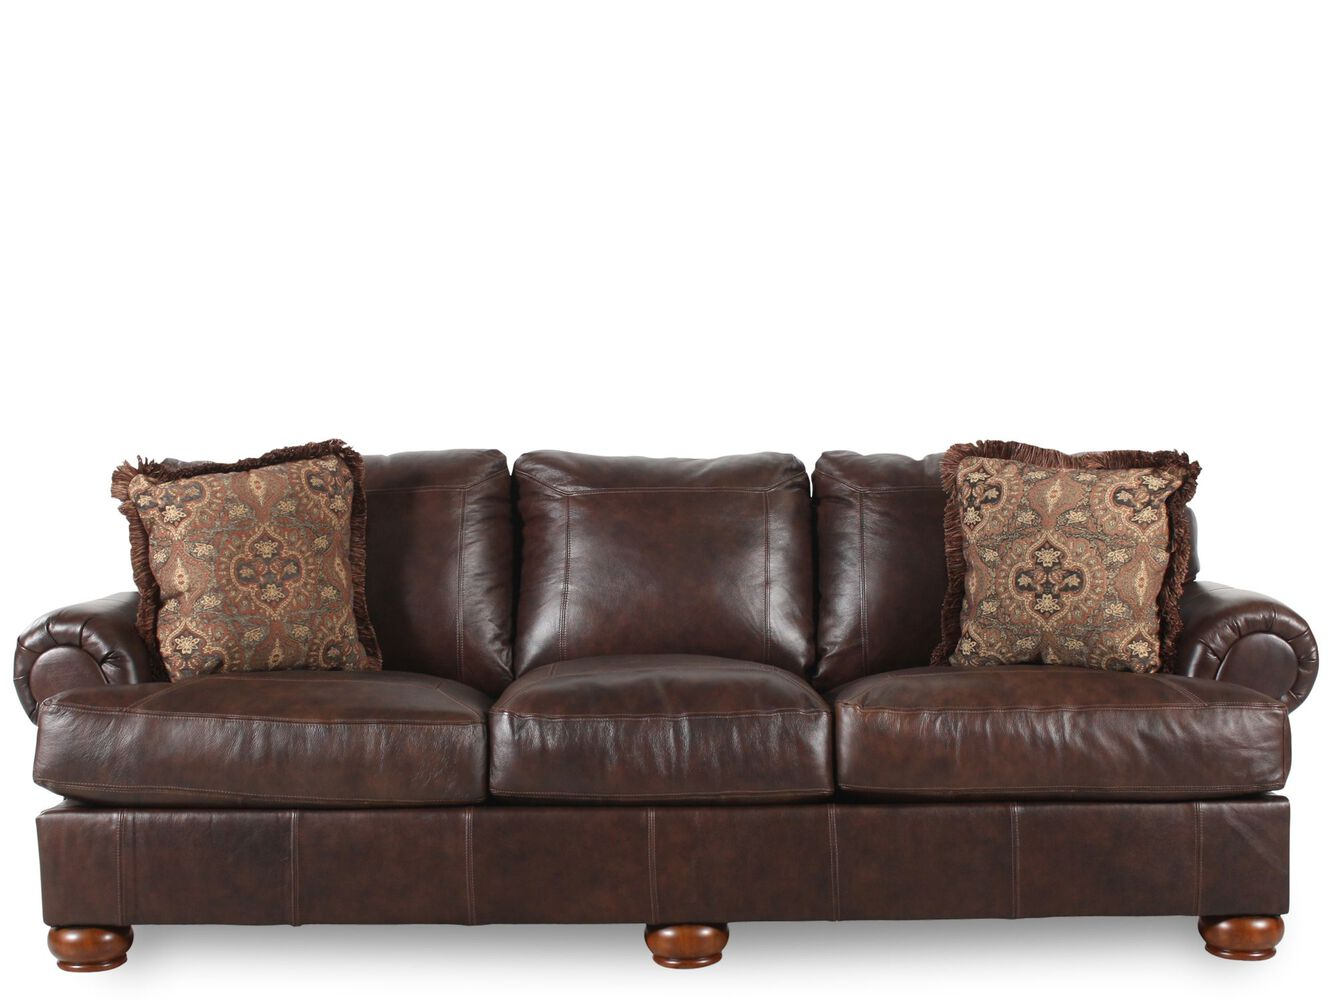 Dec 20,  · Bernhardt Reese Leather Reclining Sofa - agencja-nieruchomosci.tk Bernhardt reese double reclining leather sofa mathis brothers furniture leather sofa has dual reclining seats with wall saver the reece by bernhardt for our sitting room cool bernhardt leather recliner fallon sofa.